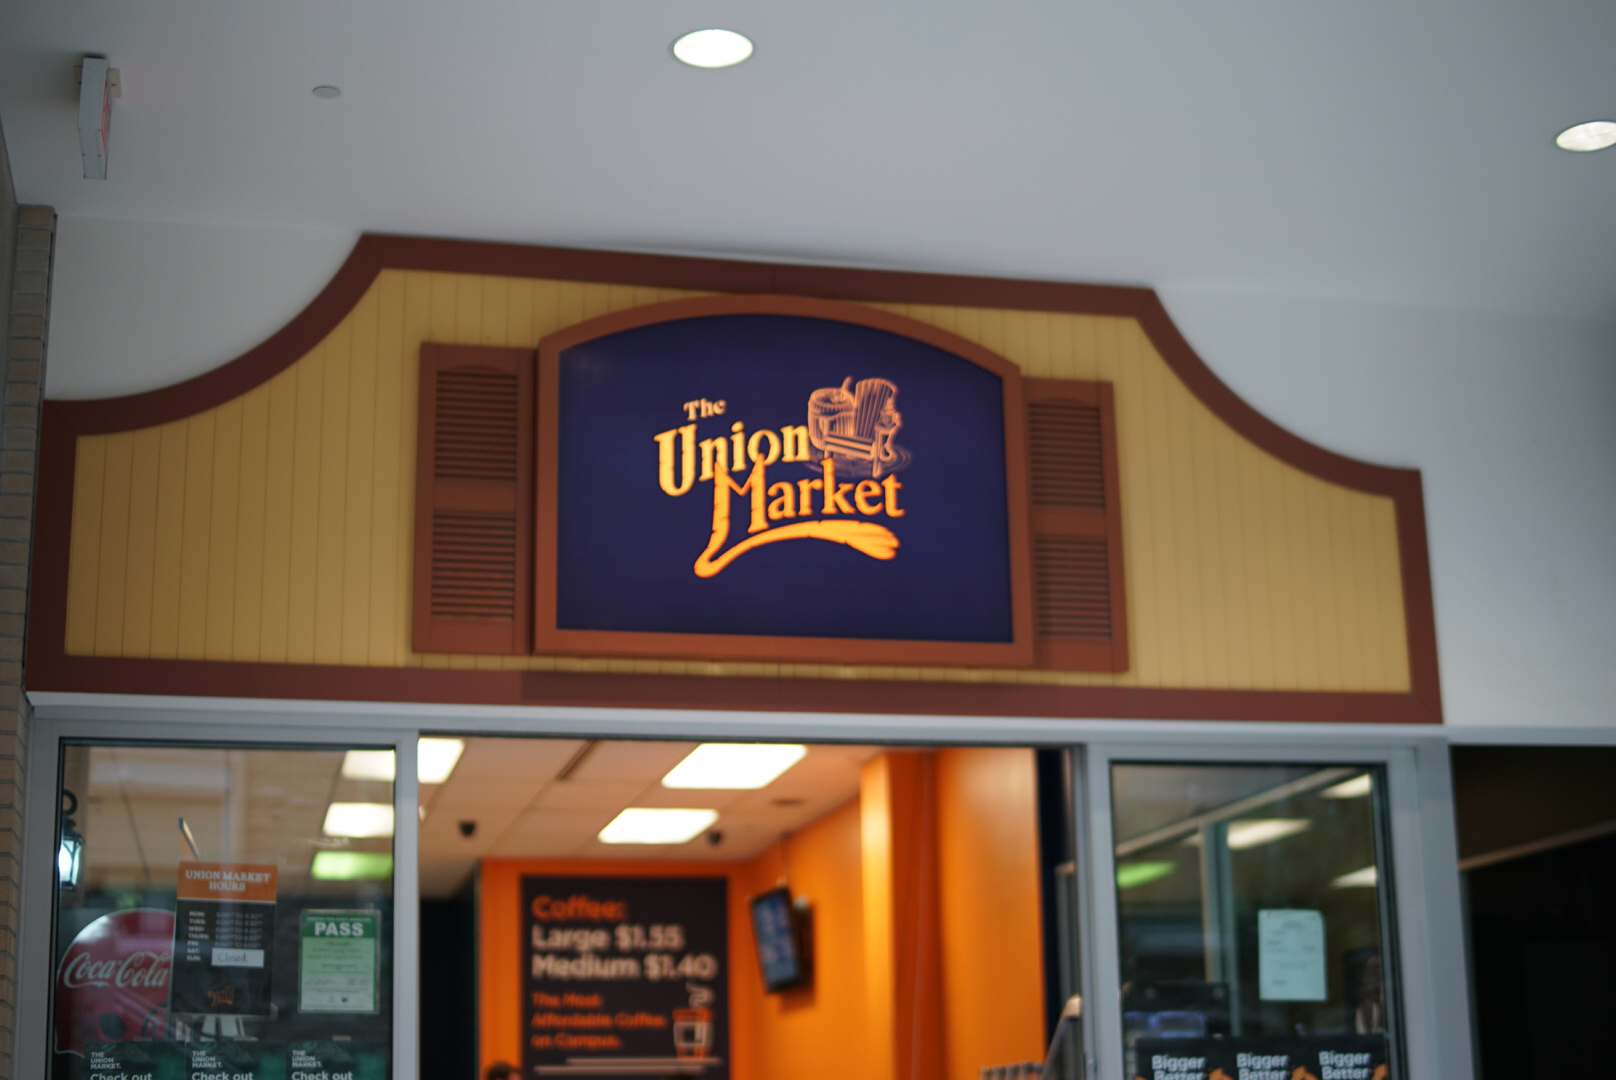 Union Market keeps things fresh MSU operated Union Market has been going through major changes over recent months